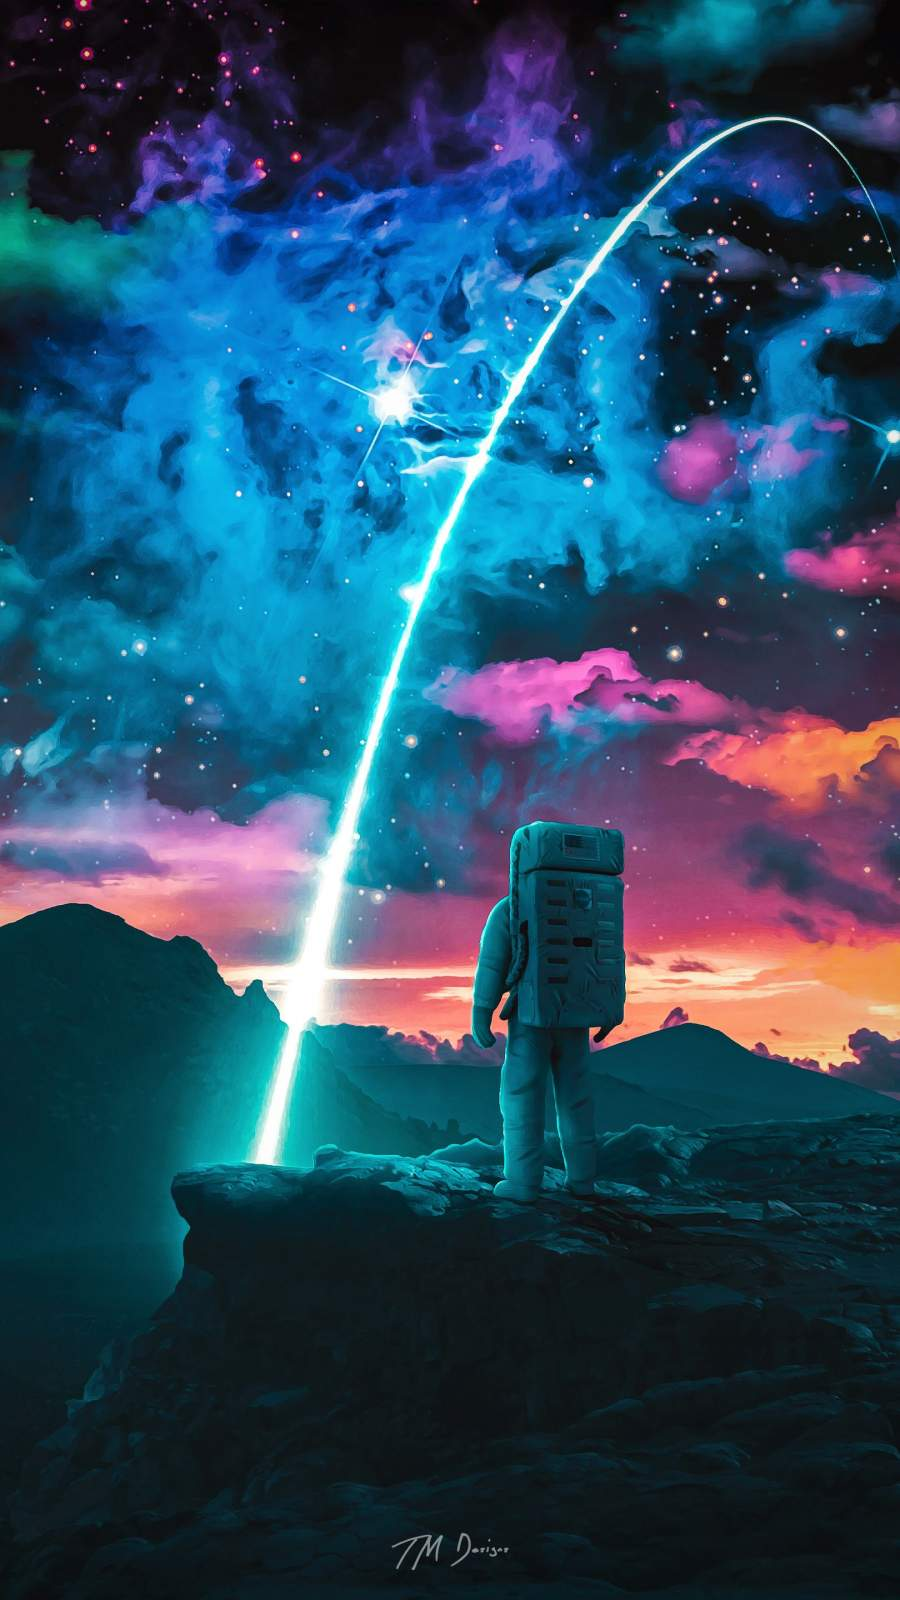 Astronaut Star iPhone Wallpaper